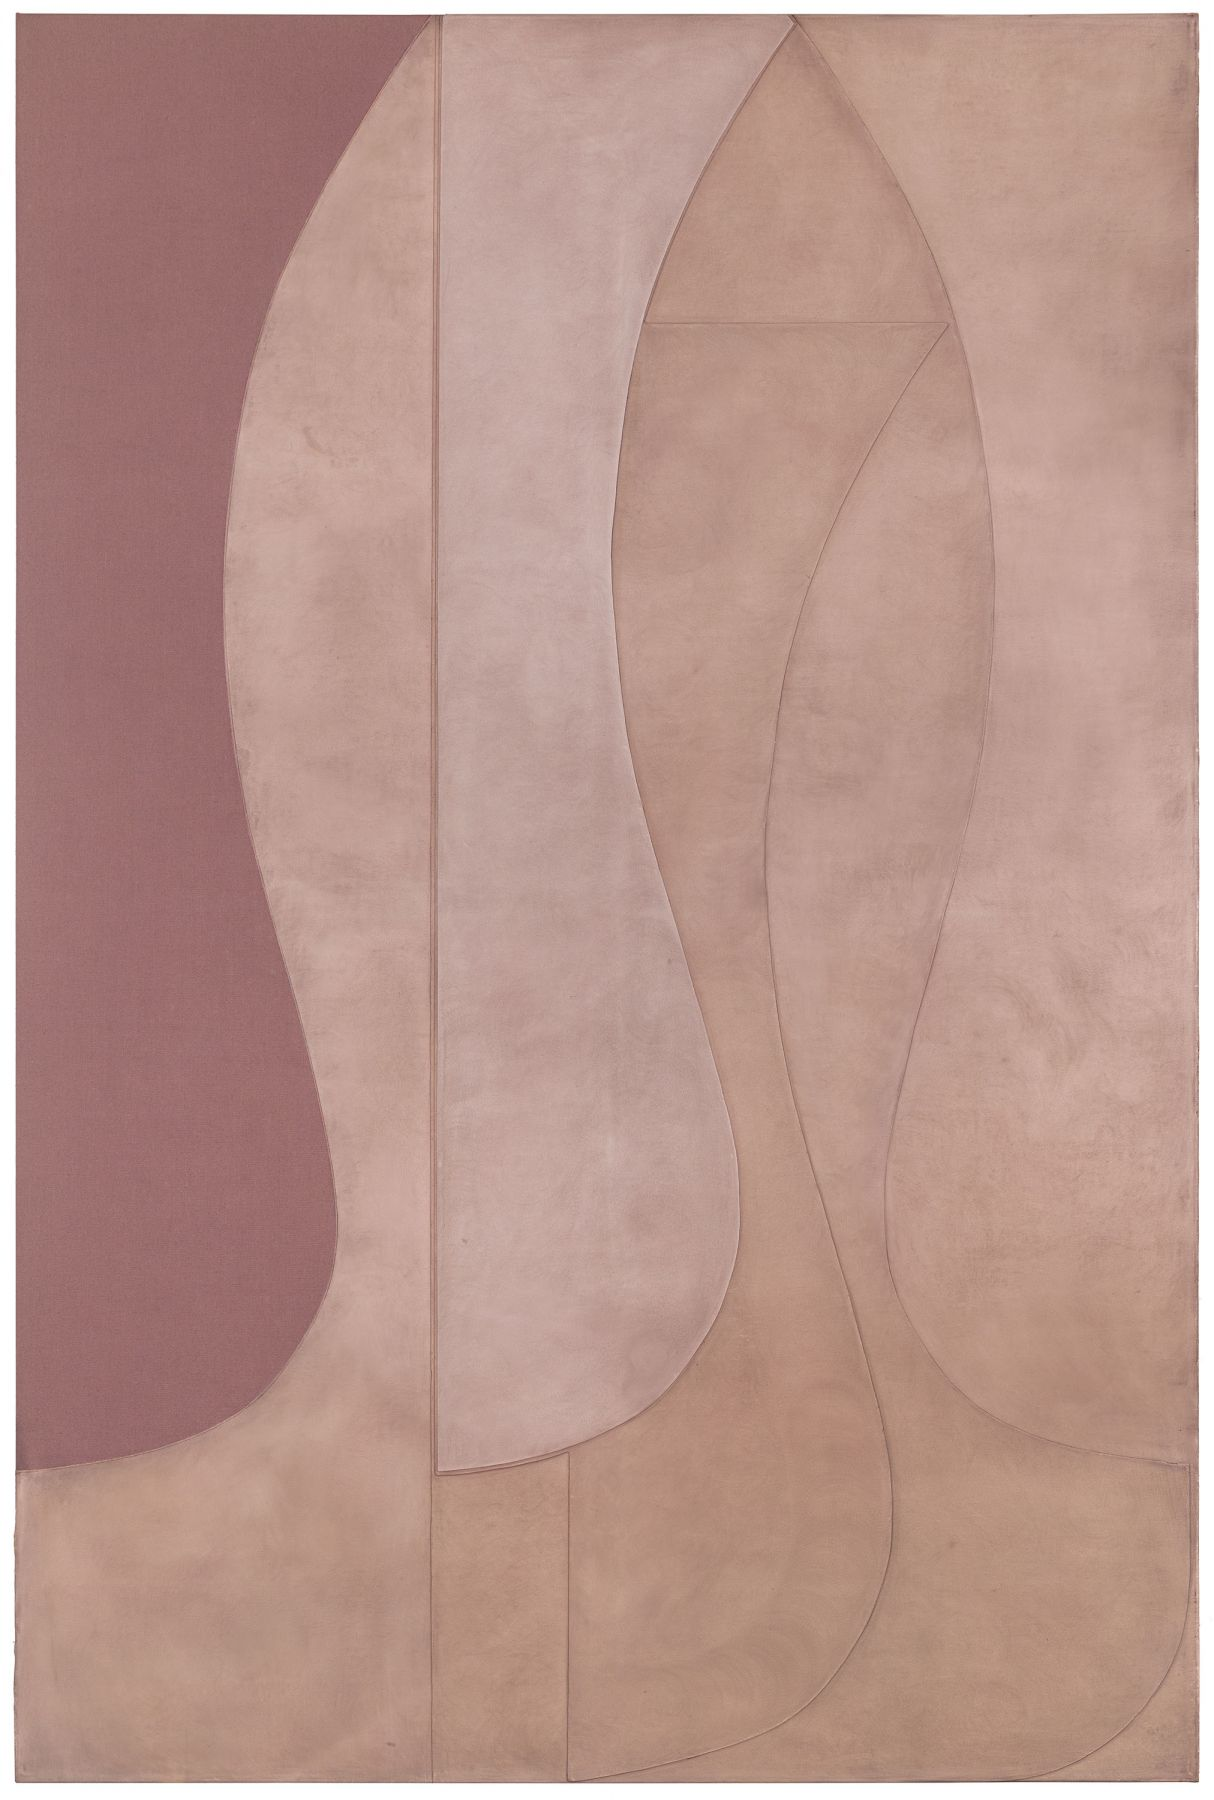 A pink painting by the artist Svenja Deininger